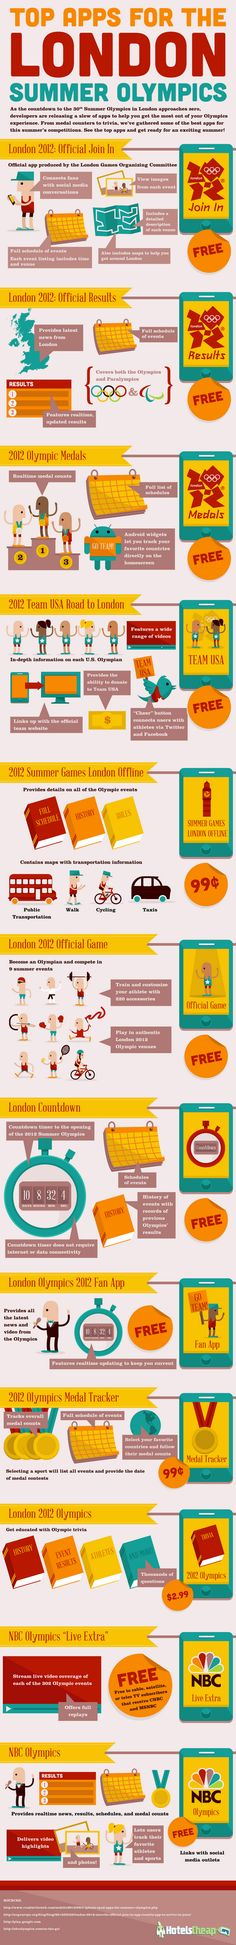 Top Apps for the London Summer Olympics